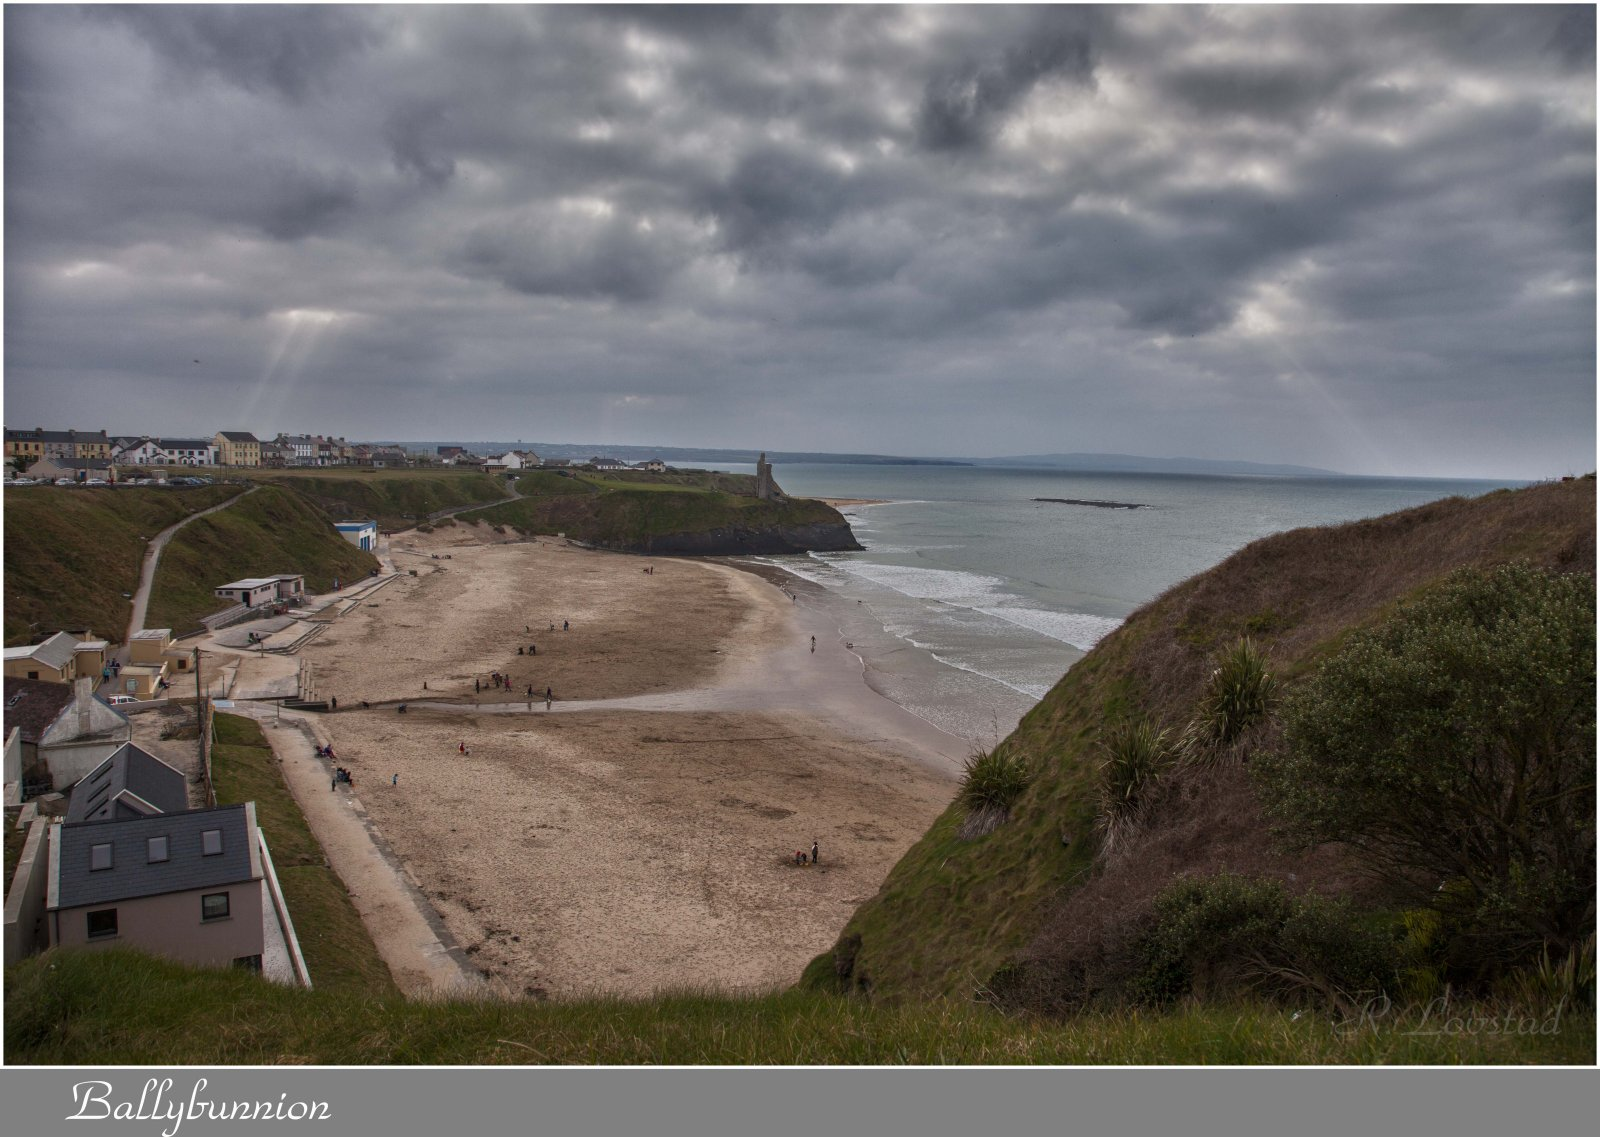 Click image for larger version  Name:Ballybunnion.jpg Views:32 Size:280.6 KB ID:123724